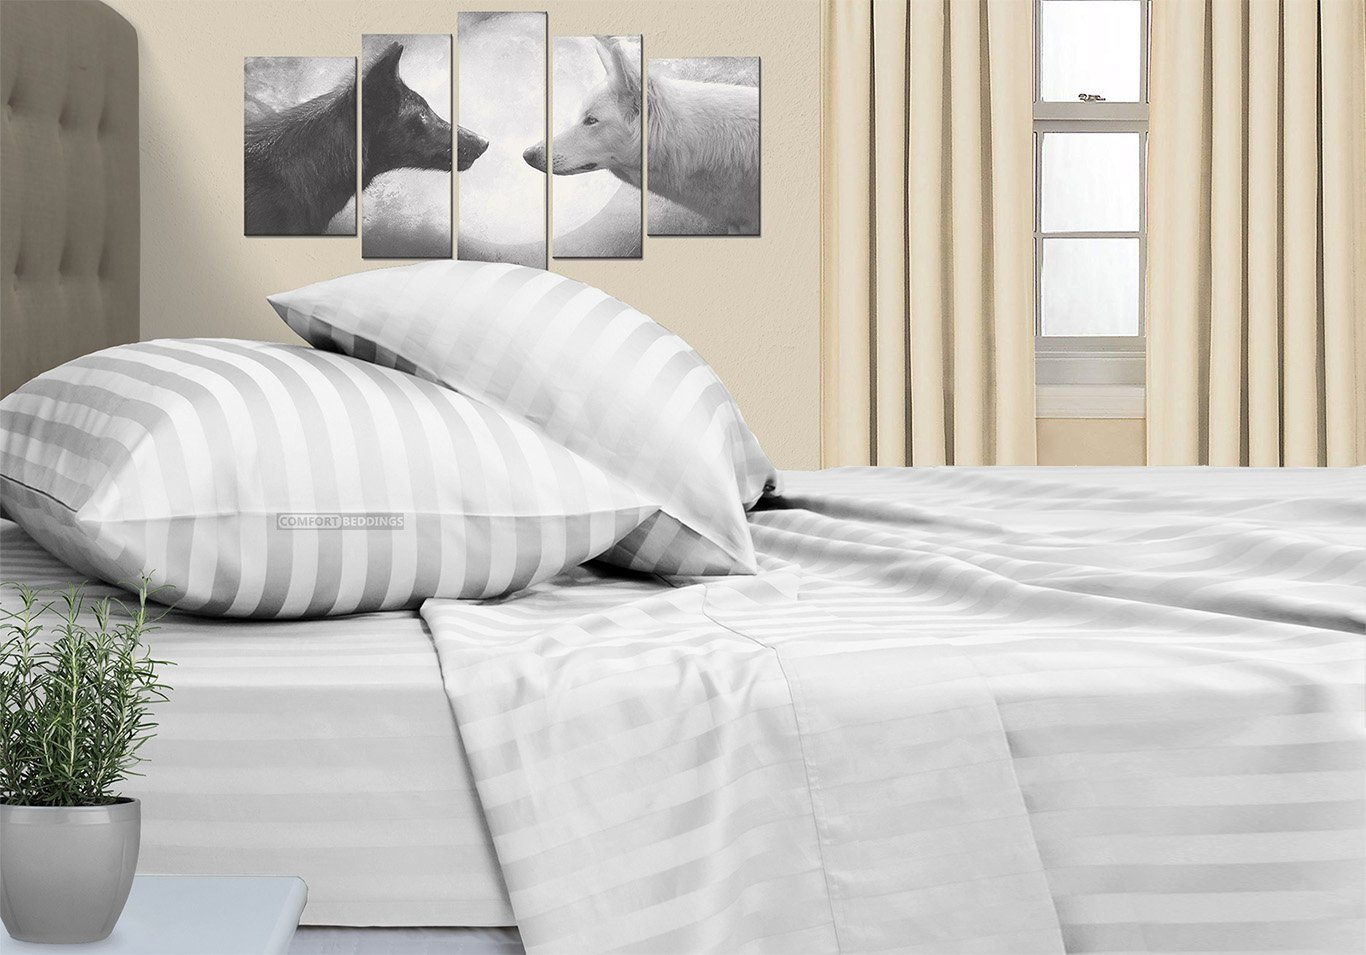 Stripe - Luxurious Cotton White Striped RV Sheet Set